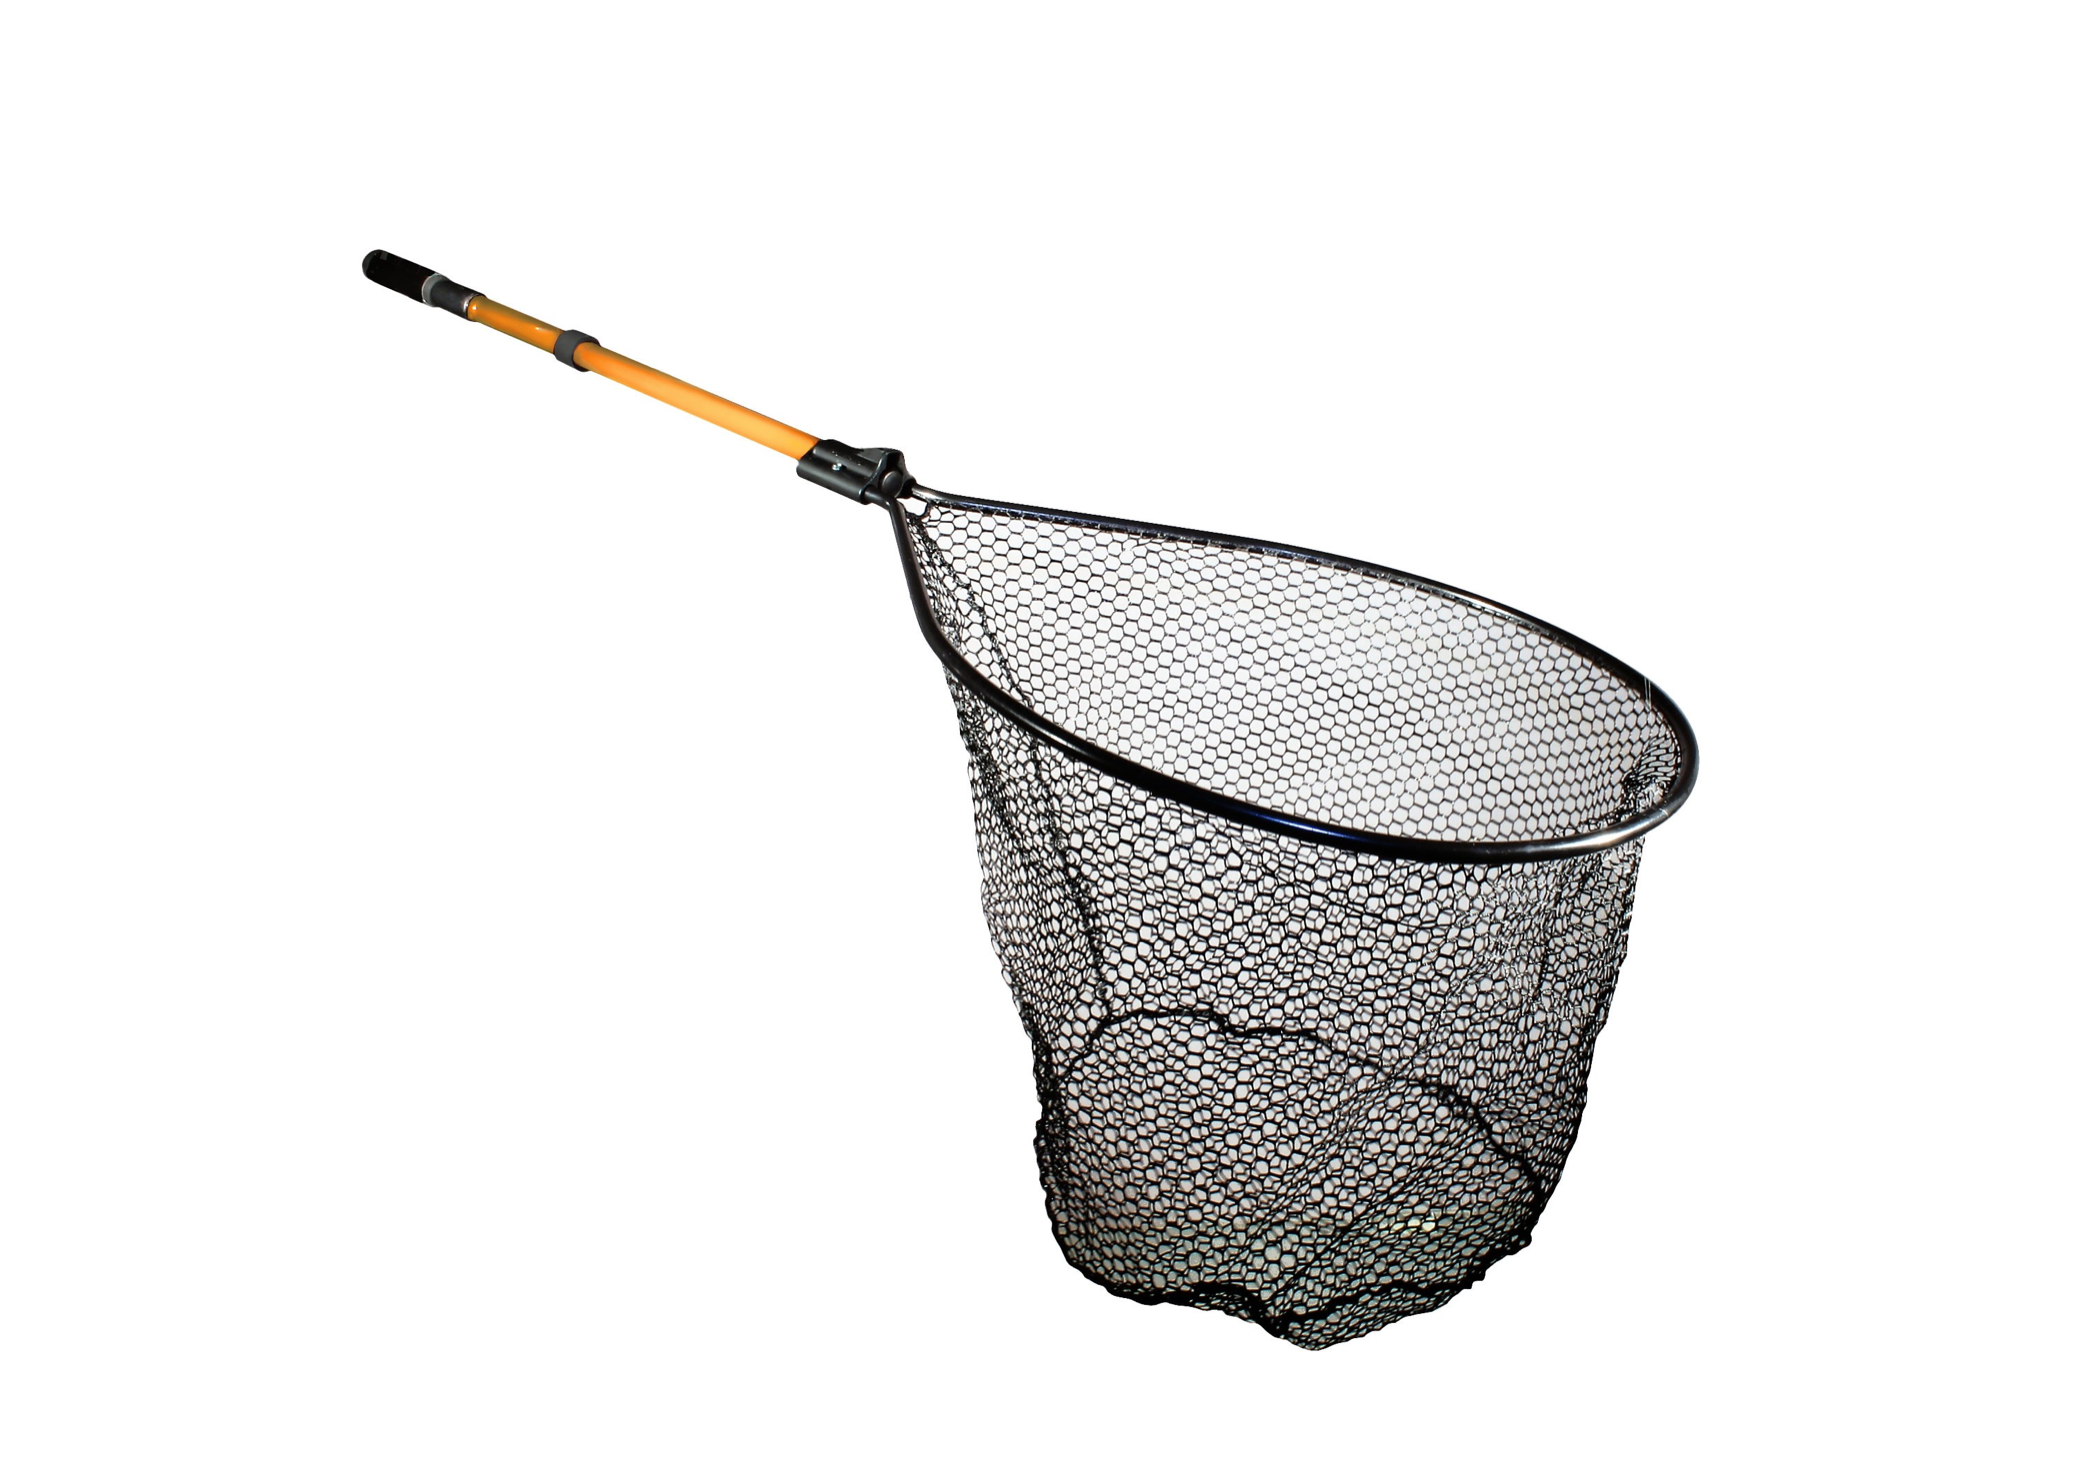 Frabill's Conservation Series nets are designed to land fish without harming them. All nets feature